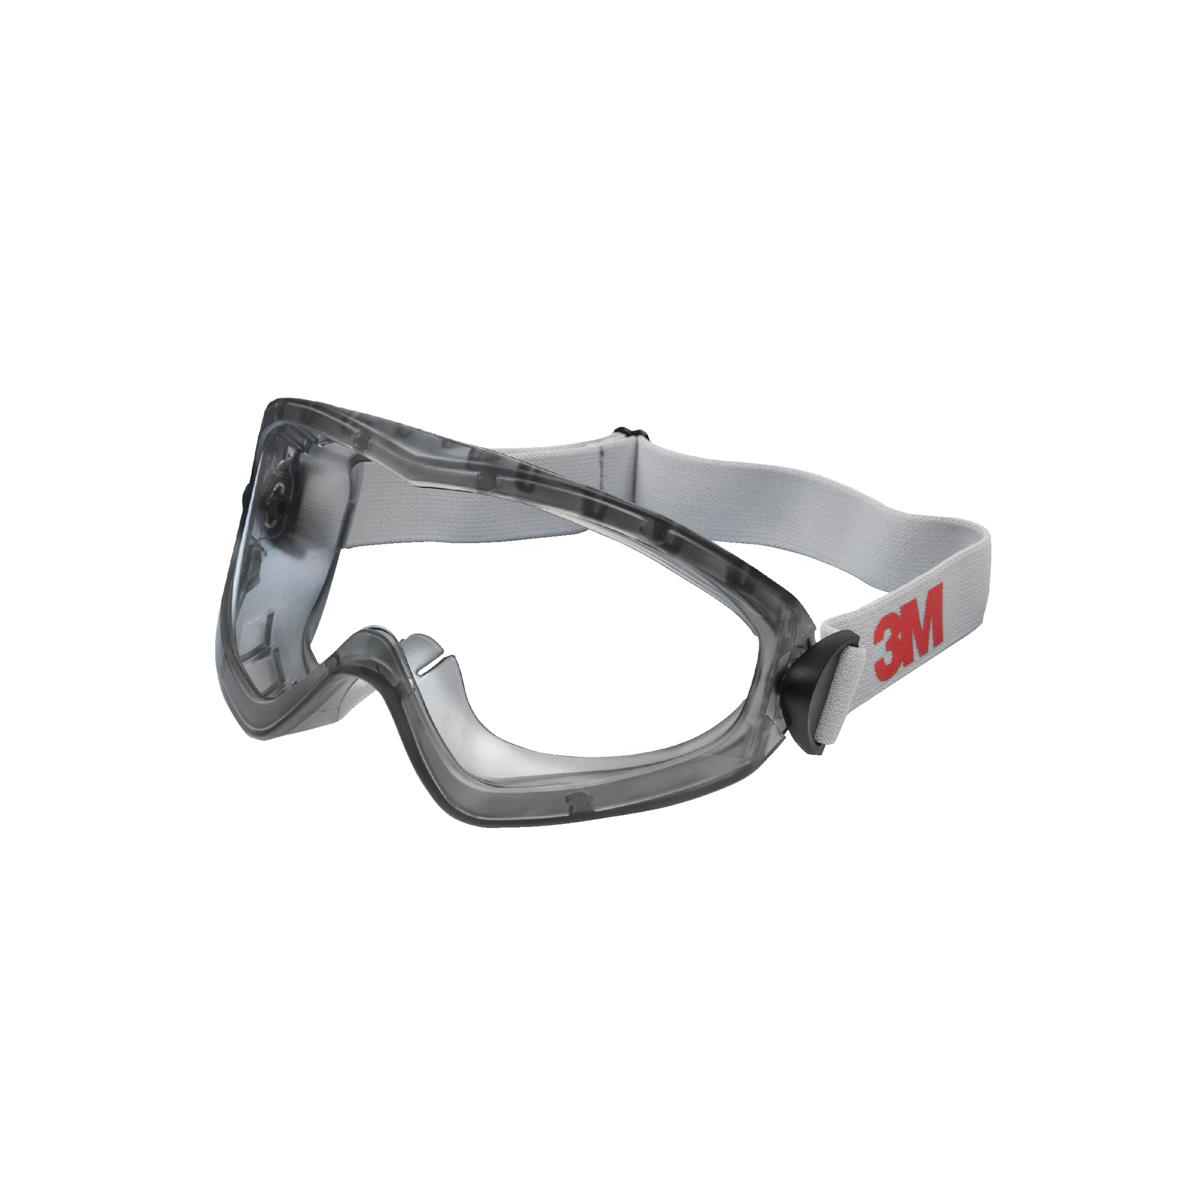 7584775e73 3M Safety Goggles Splash Proof Dust Resistant Anti-Mist Scratch Resistant  Fully Adjustable Ref 2890S